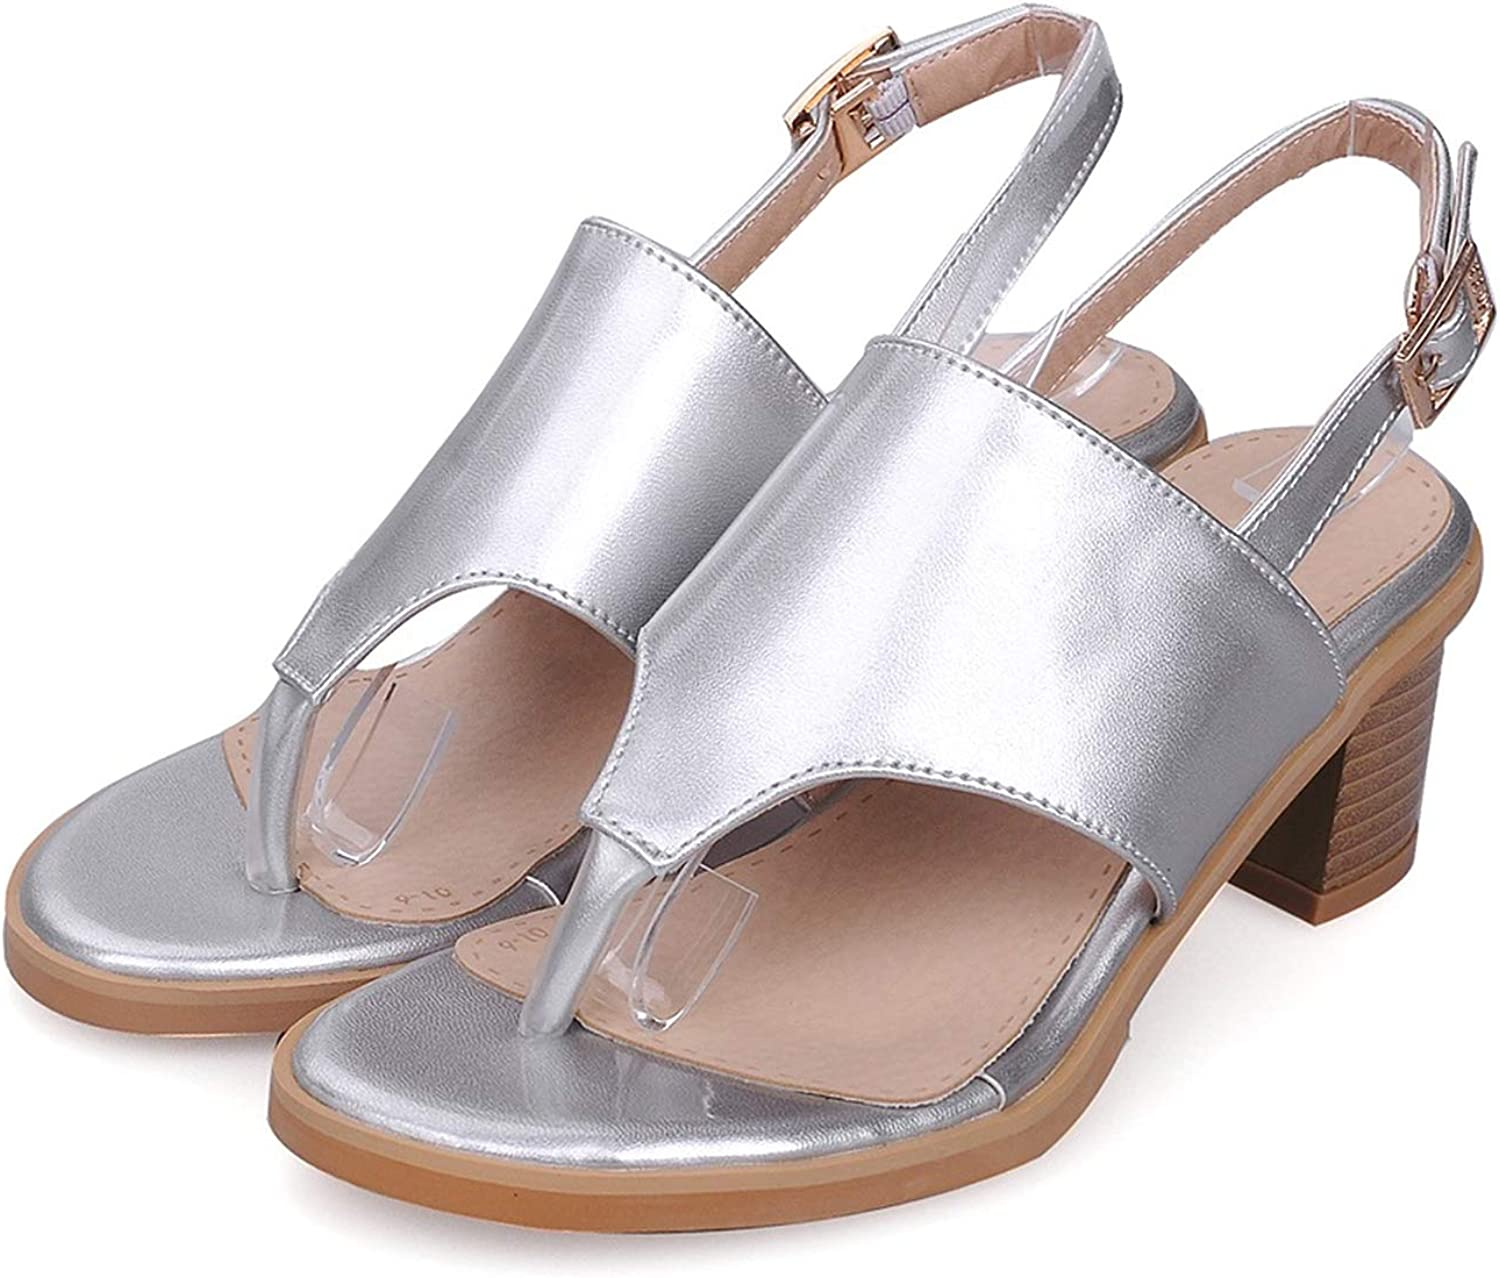 Plus Size 33-43 Summer Women Sandals med Heels Open Toe pu Leather Buckle Solid color Casual shoes